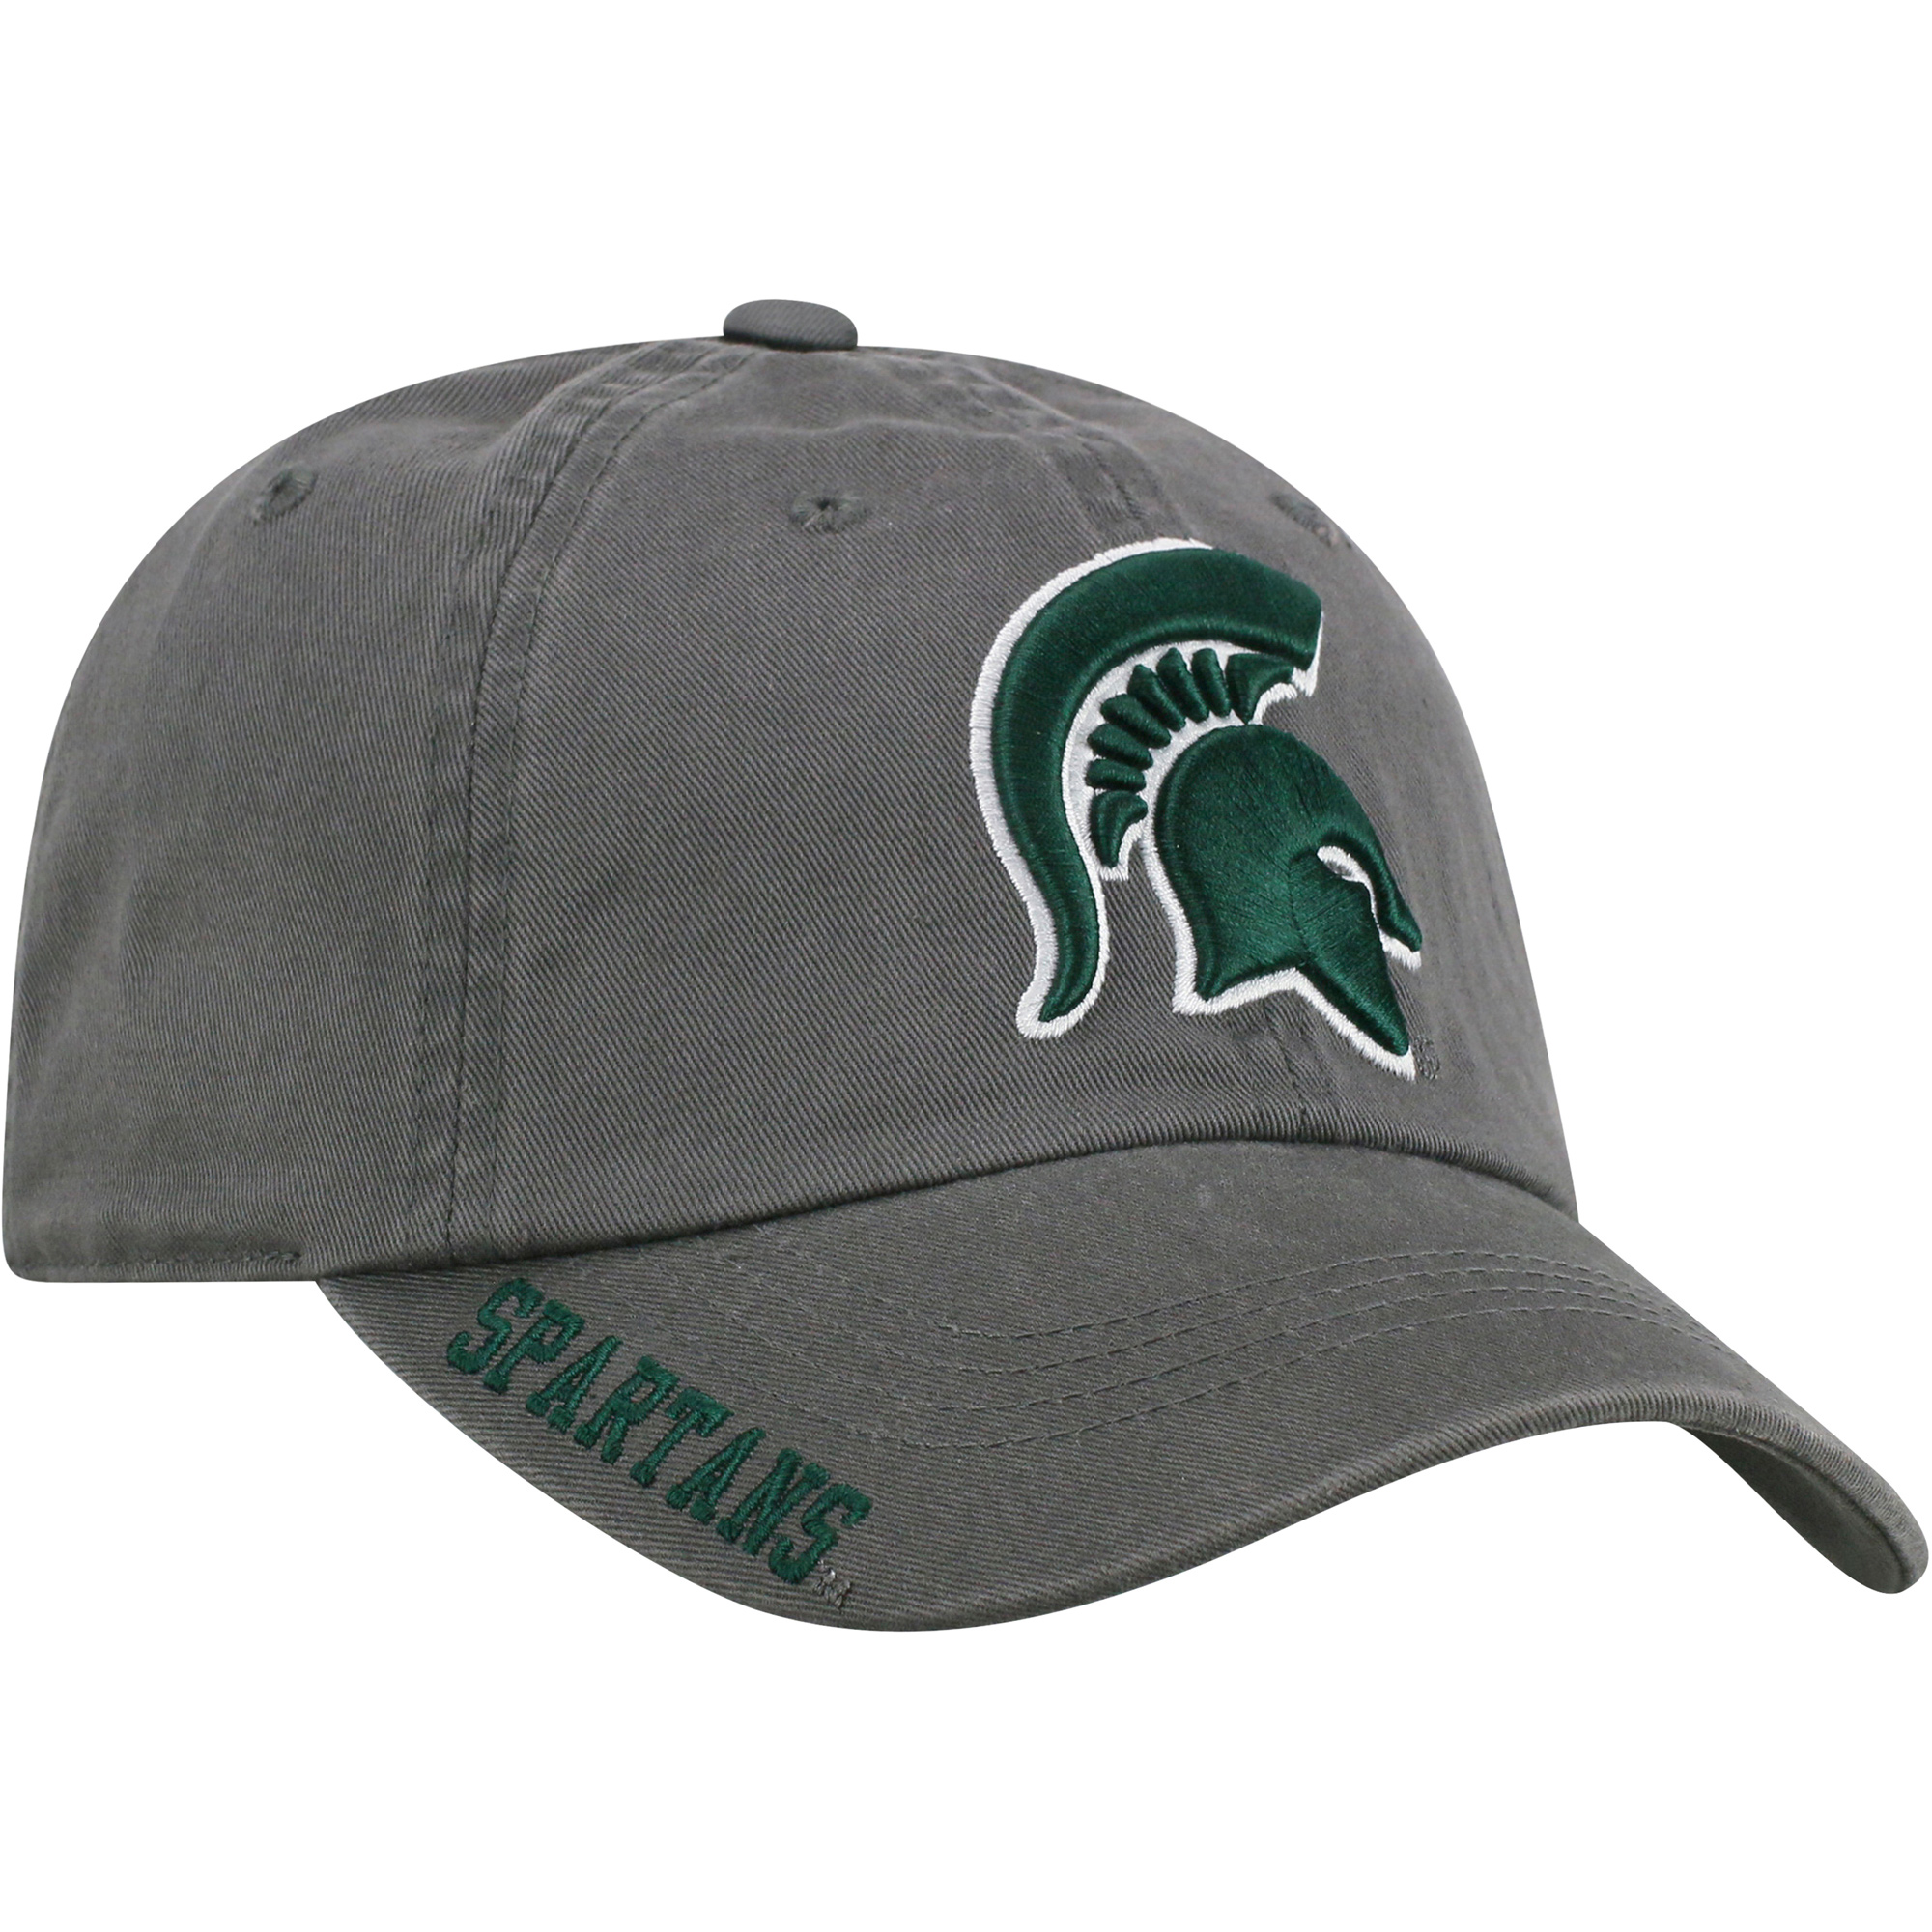 Men's Russell Charcoal Michigan State Spartans Washed Adjustable Hat - OSFA